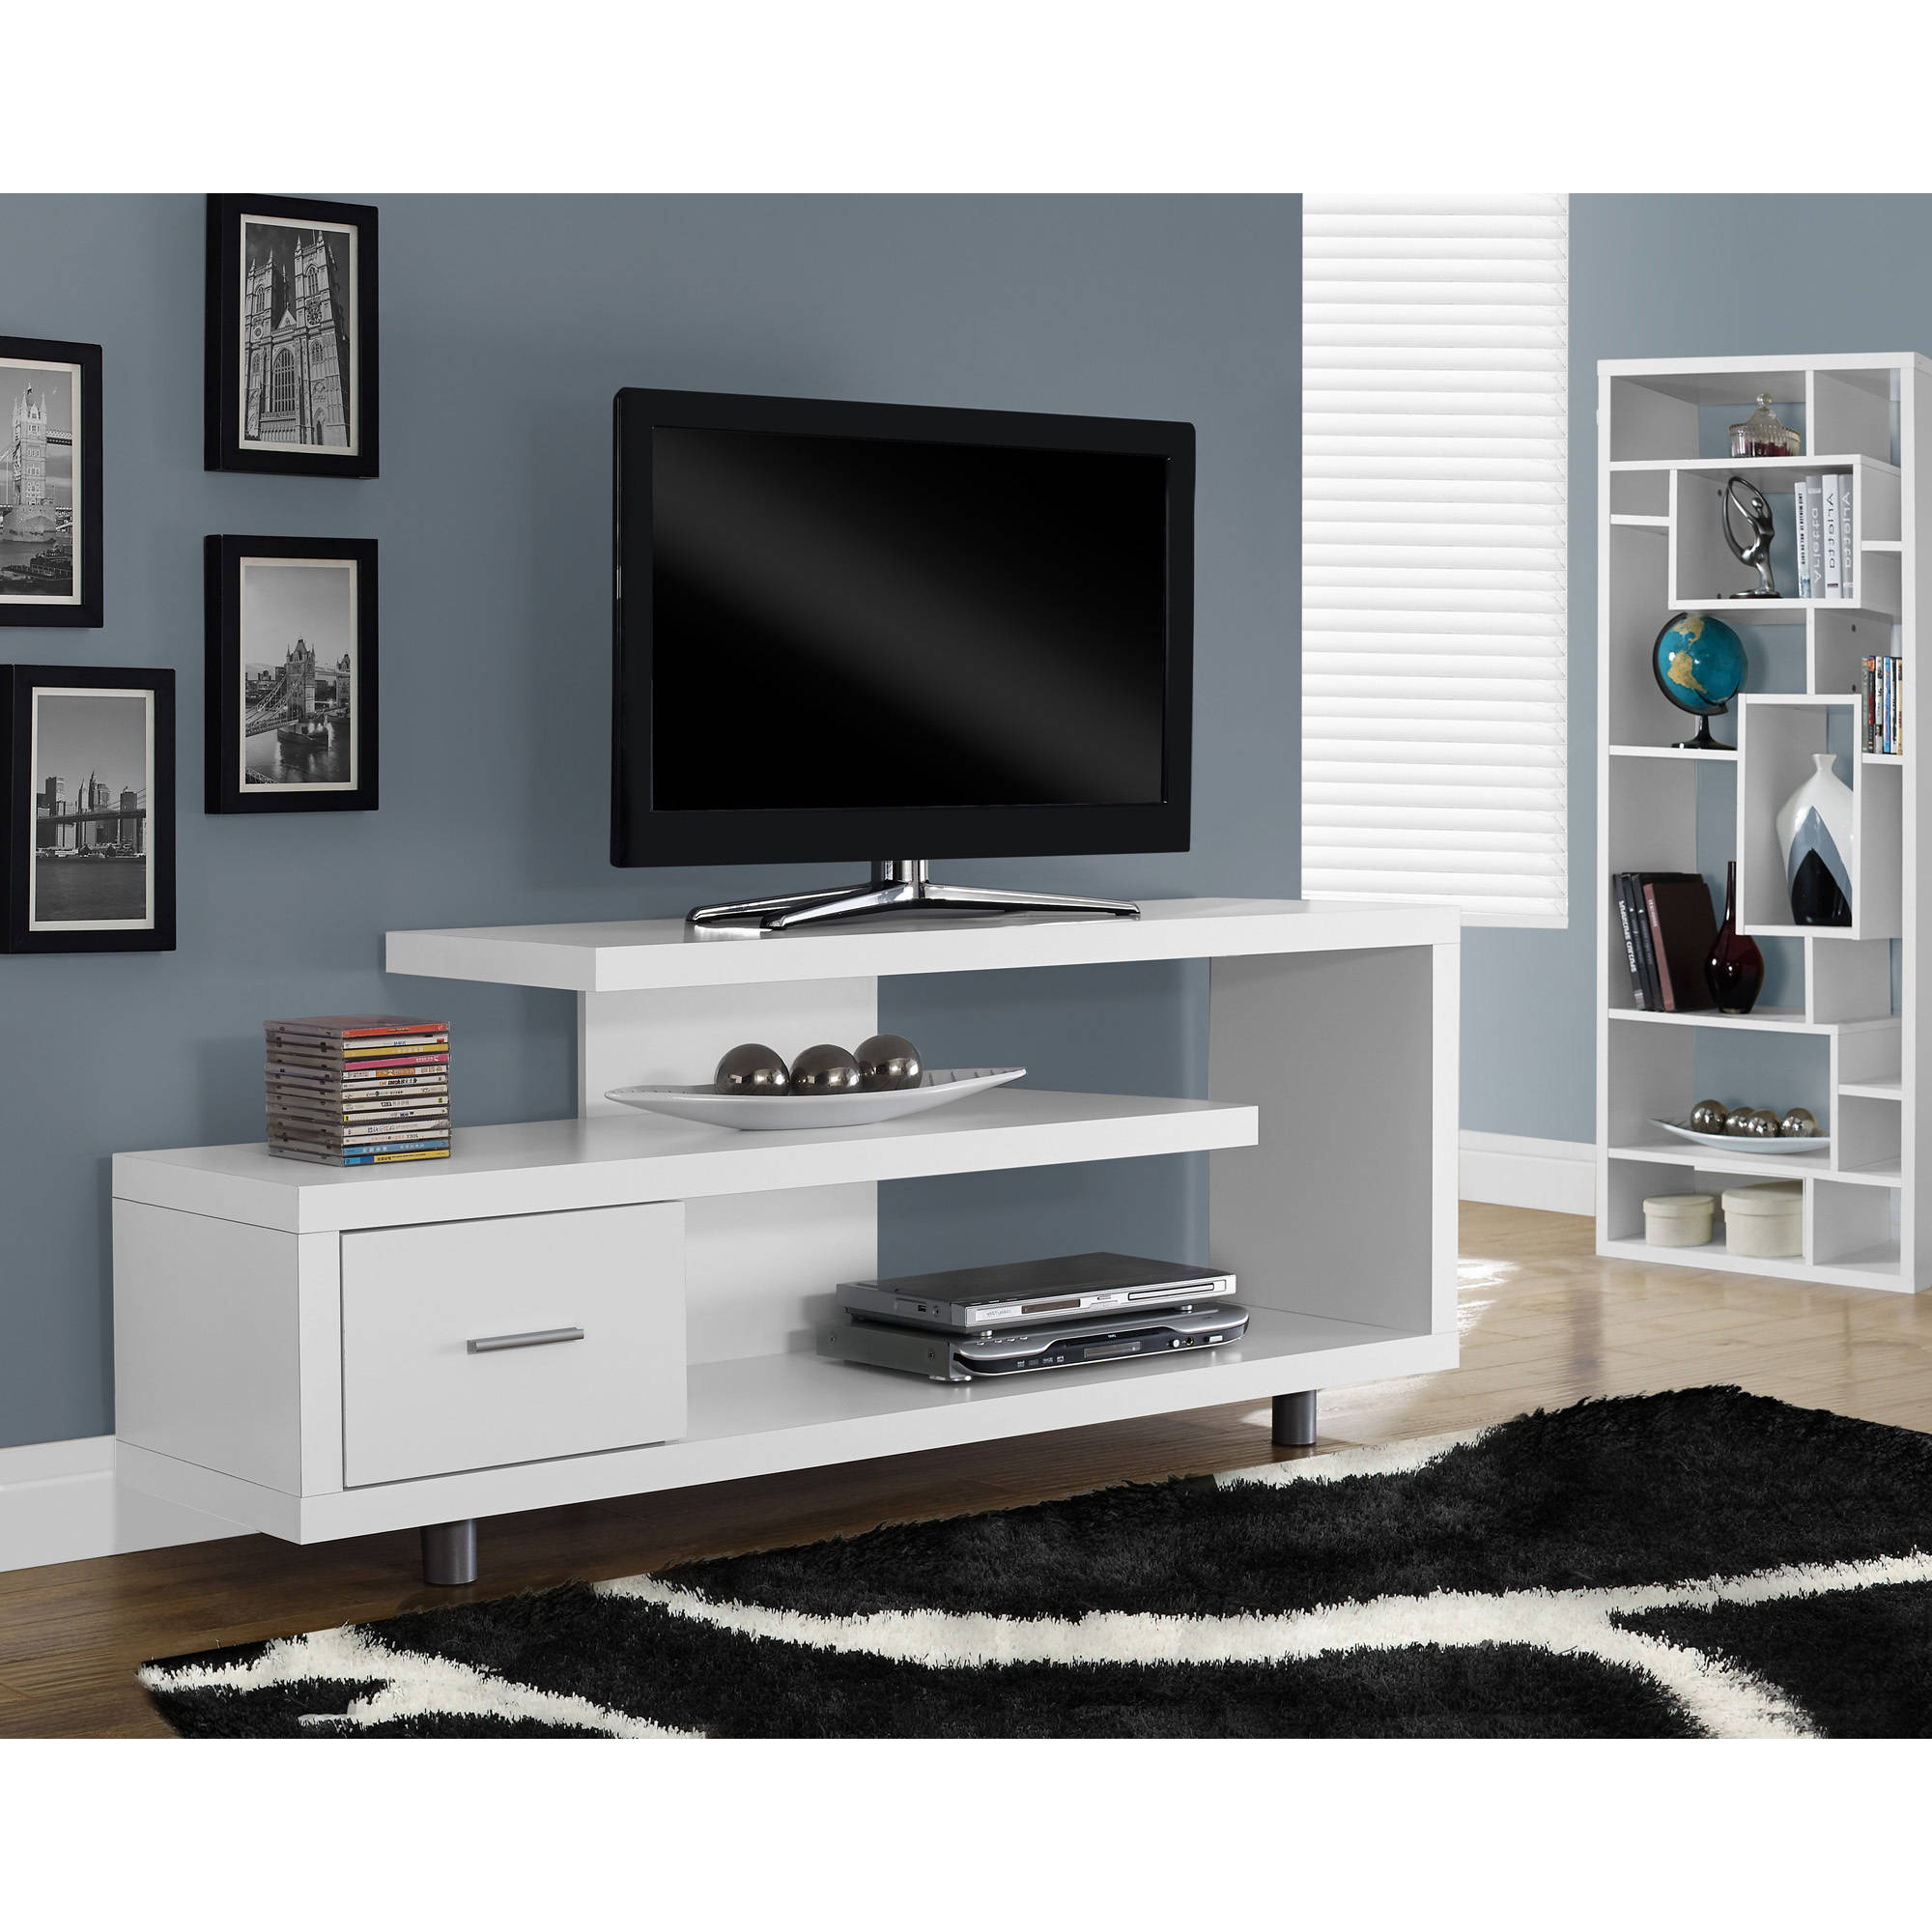 "All Modern Tv Stands With Newest 60"" Tv Stand Console Shelves Drawer Table Entertainment Wood Modern (Gallery 35 of 36)"